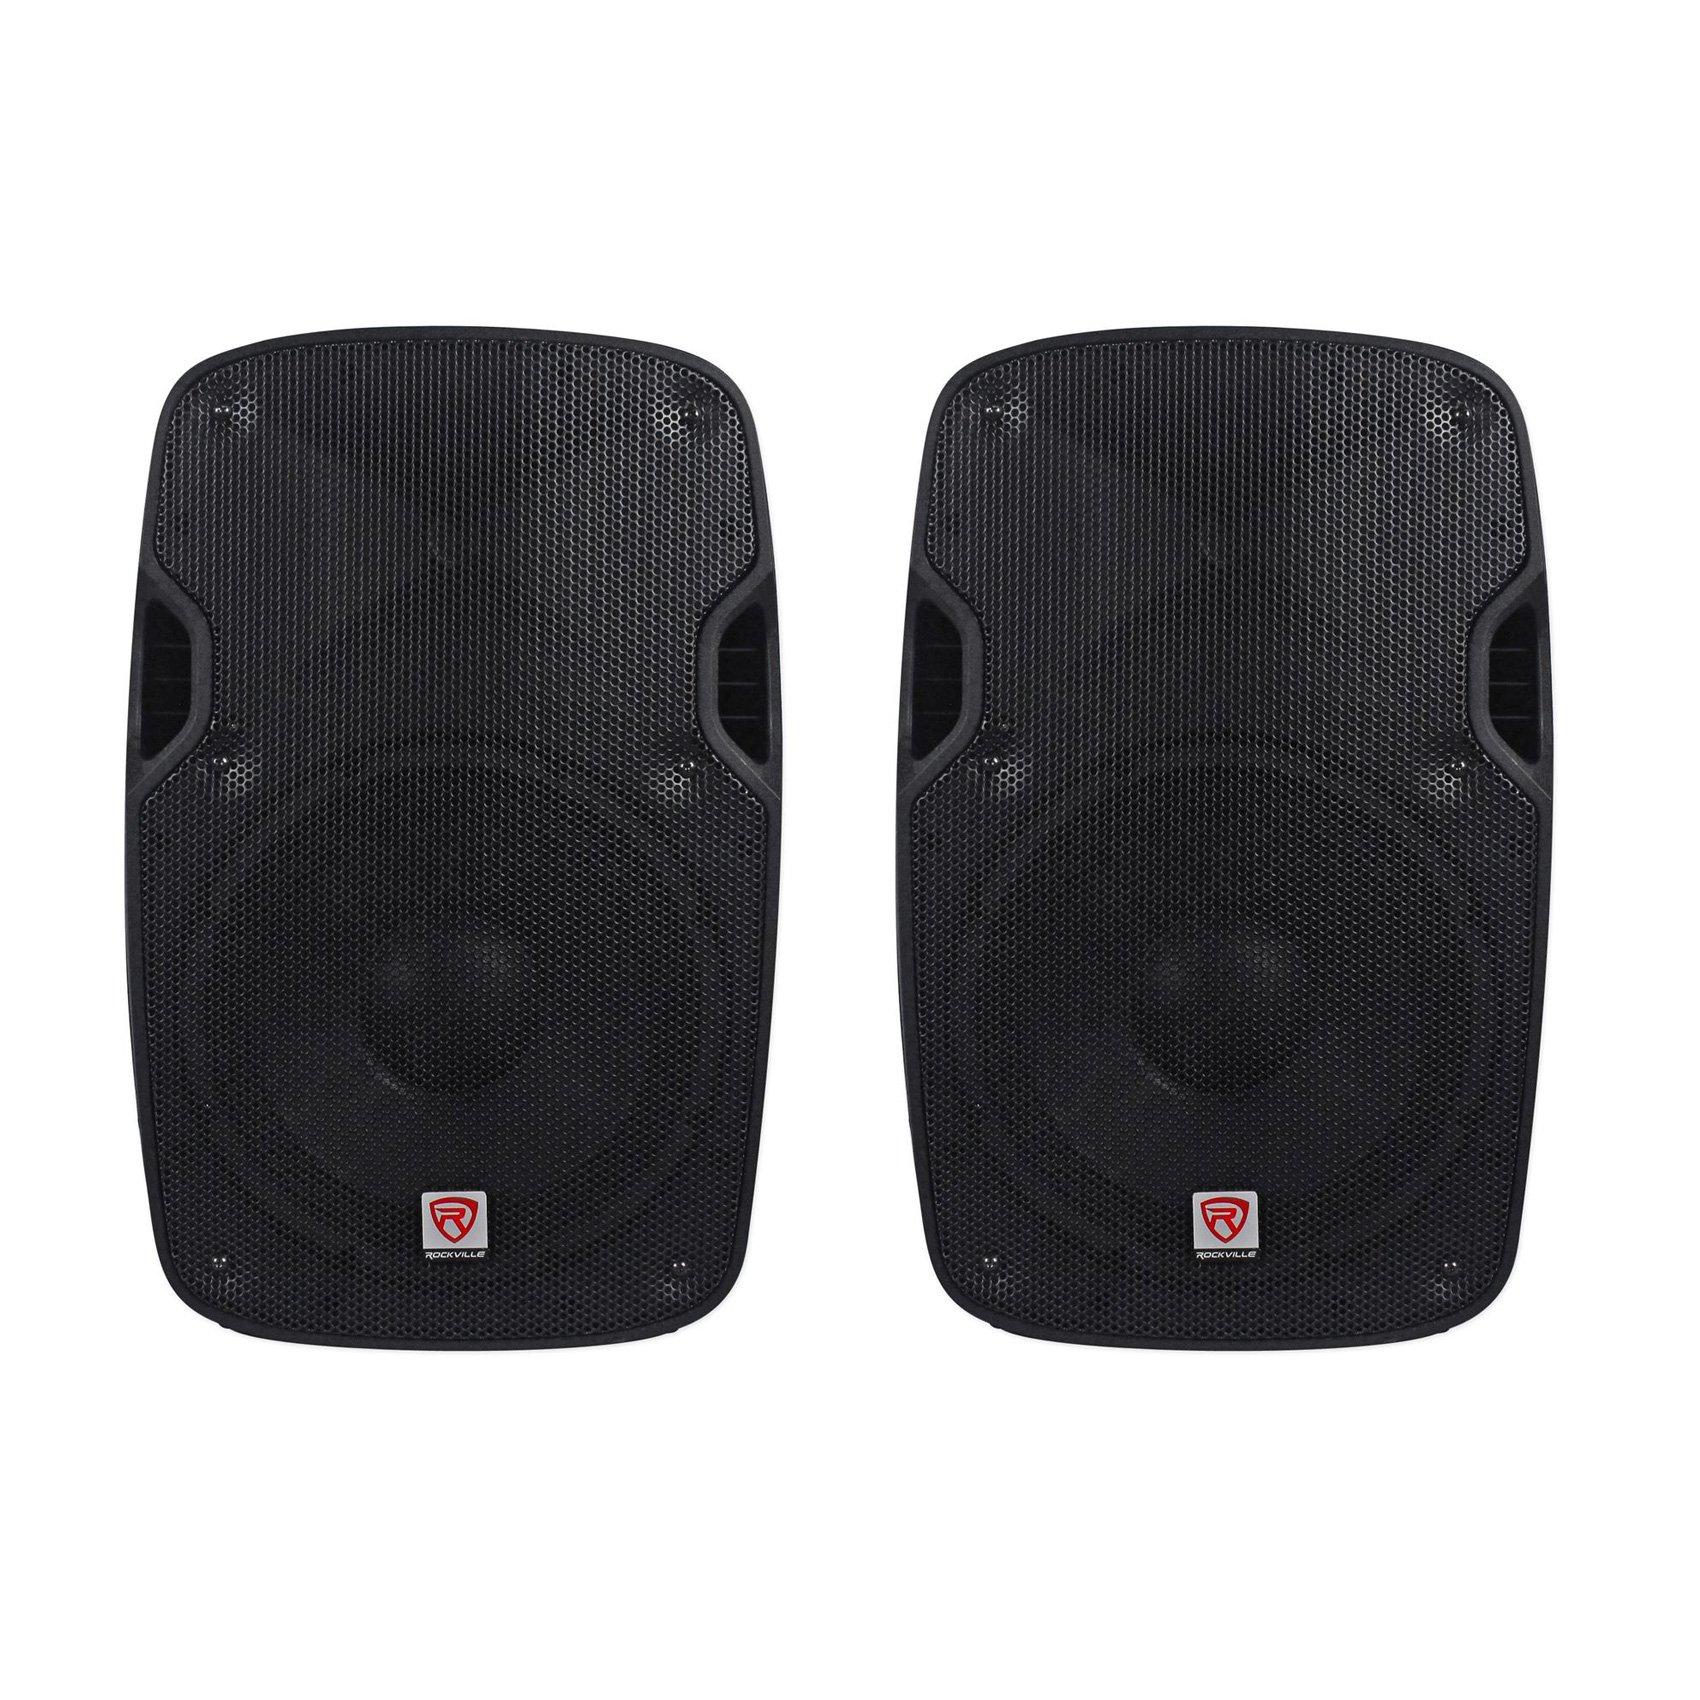 (2) Rockville SPGN154 15'' Passive 4-Ohm Lightweight DJ/PA Speakers Totaling 3200 Watt Peak With a 3'' Aluminum Voice Coil For Amazing Sound Clarity